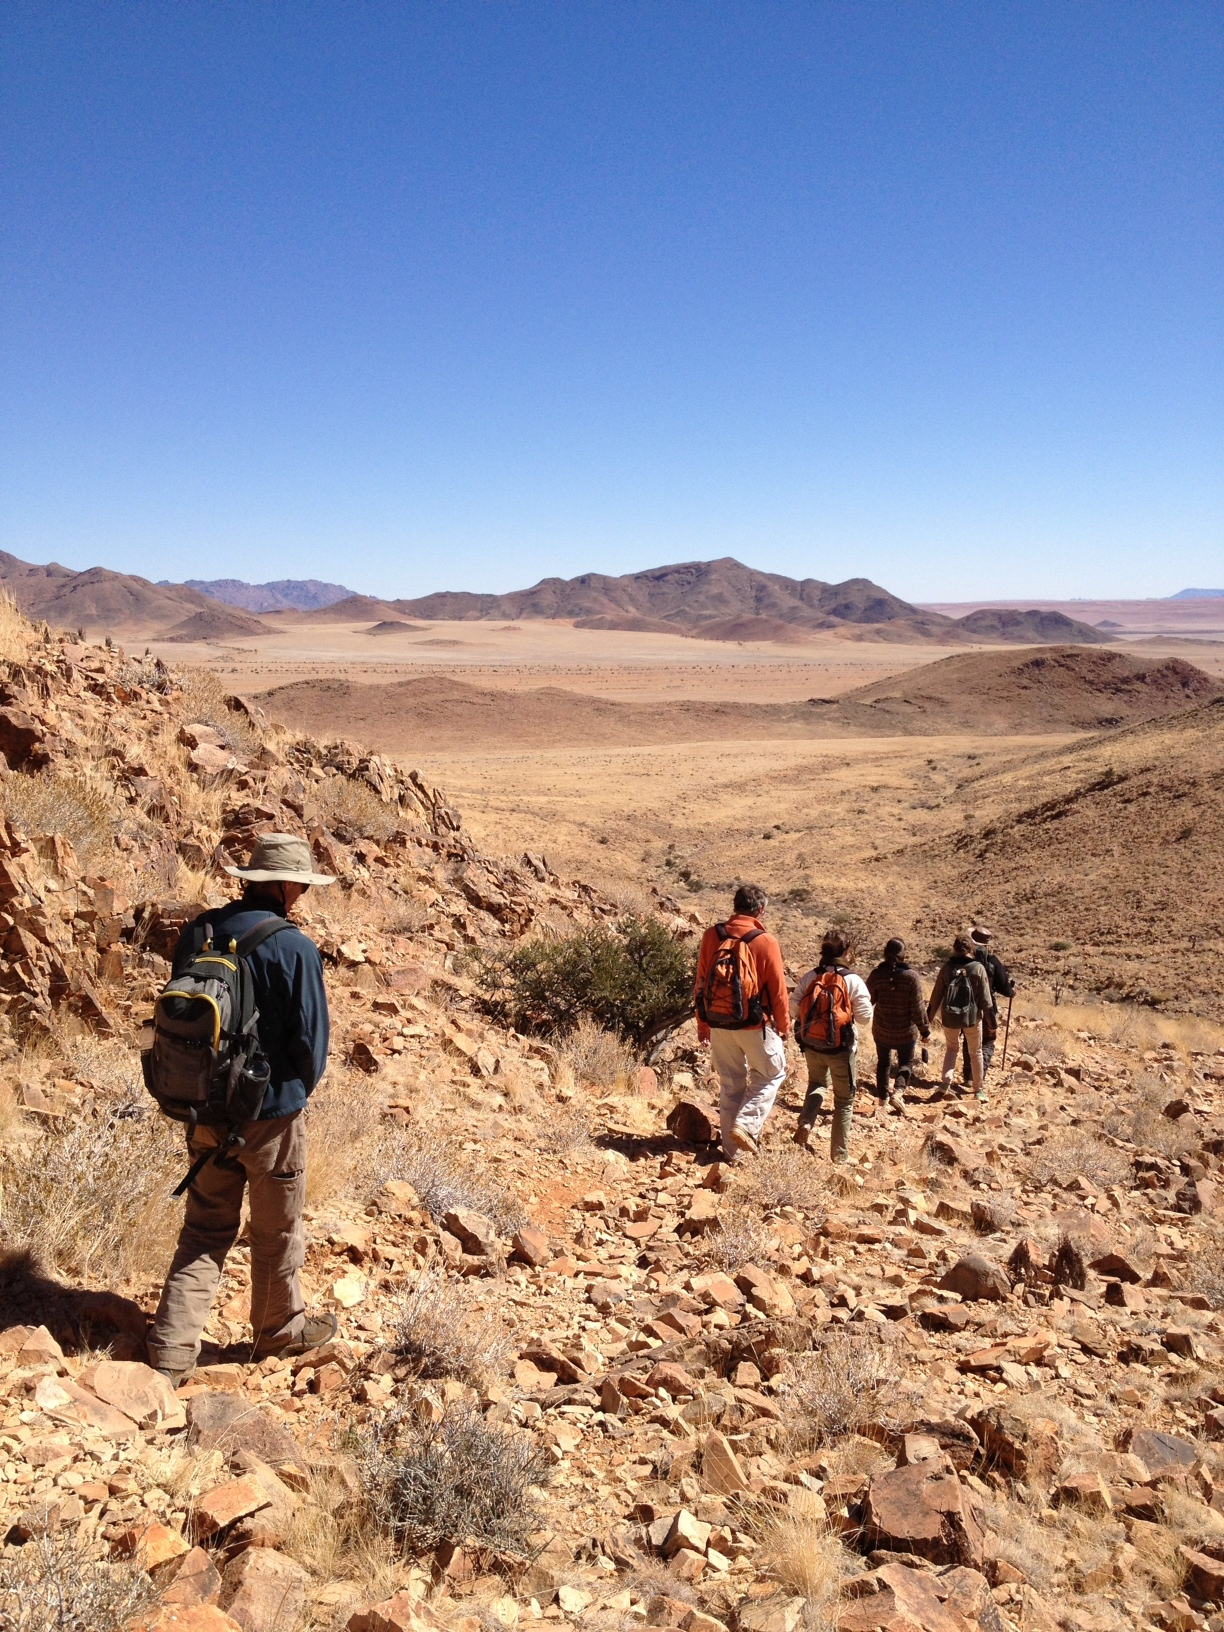 One small corner of the great Namib. Photo by me.